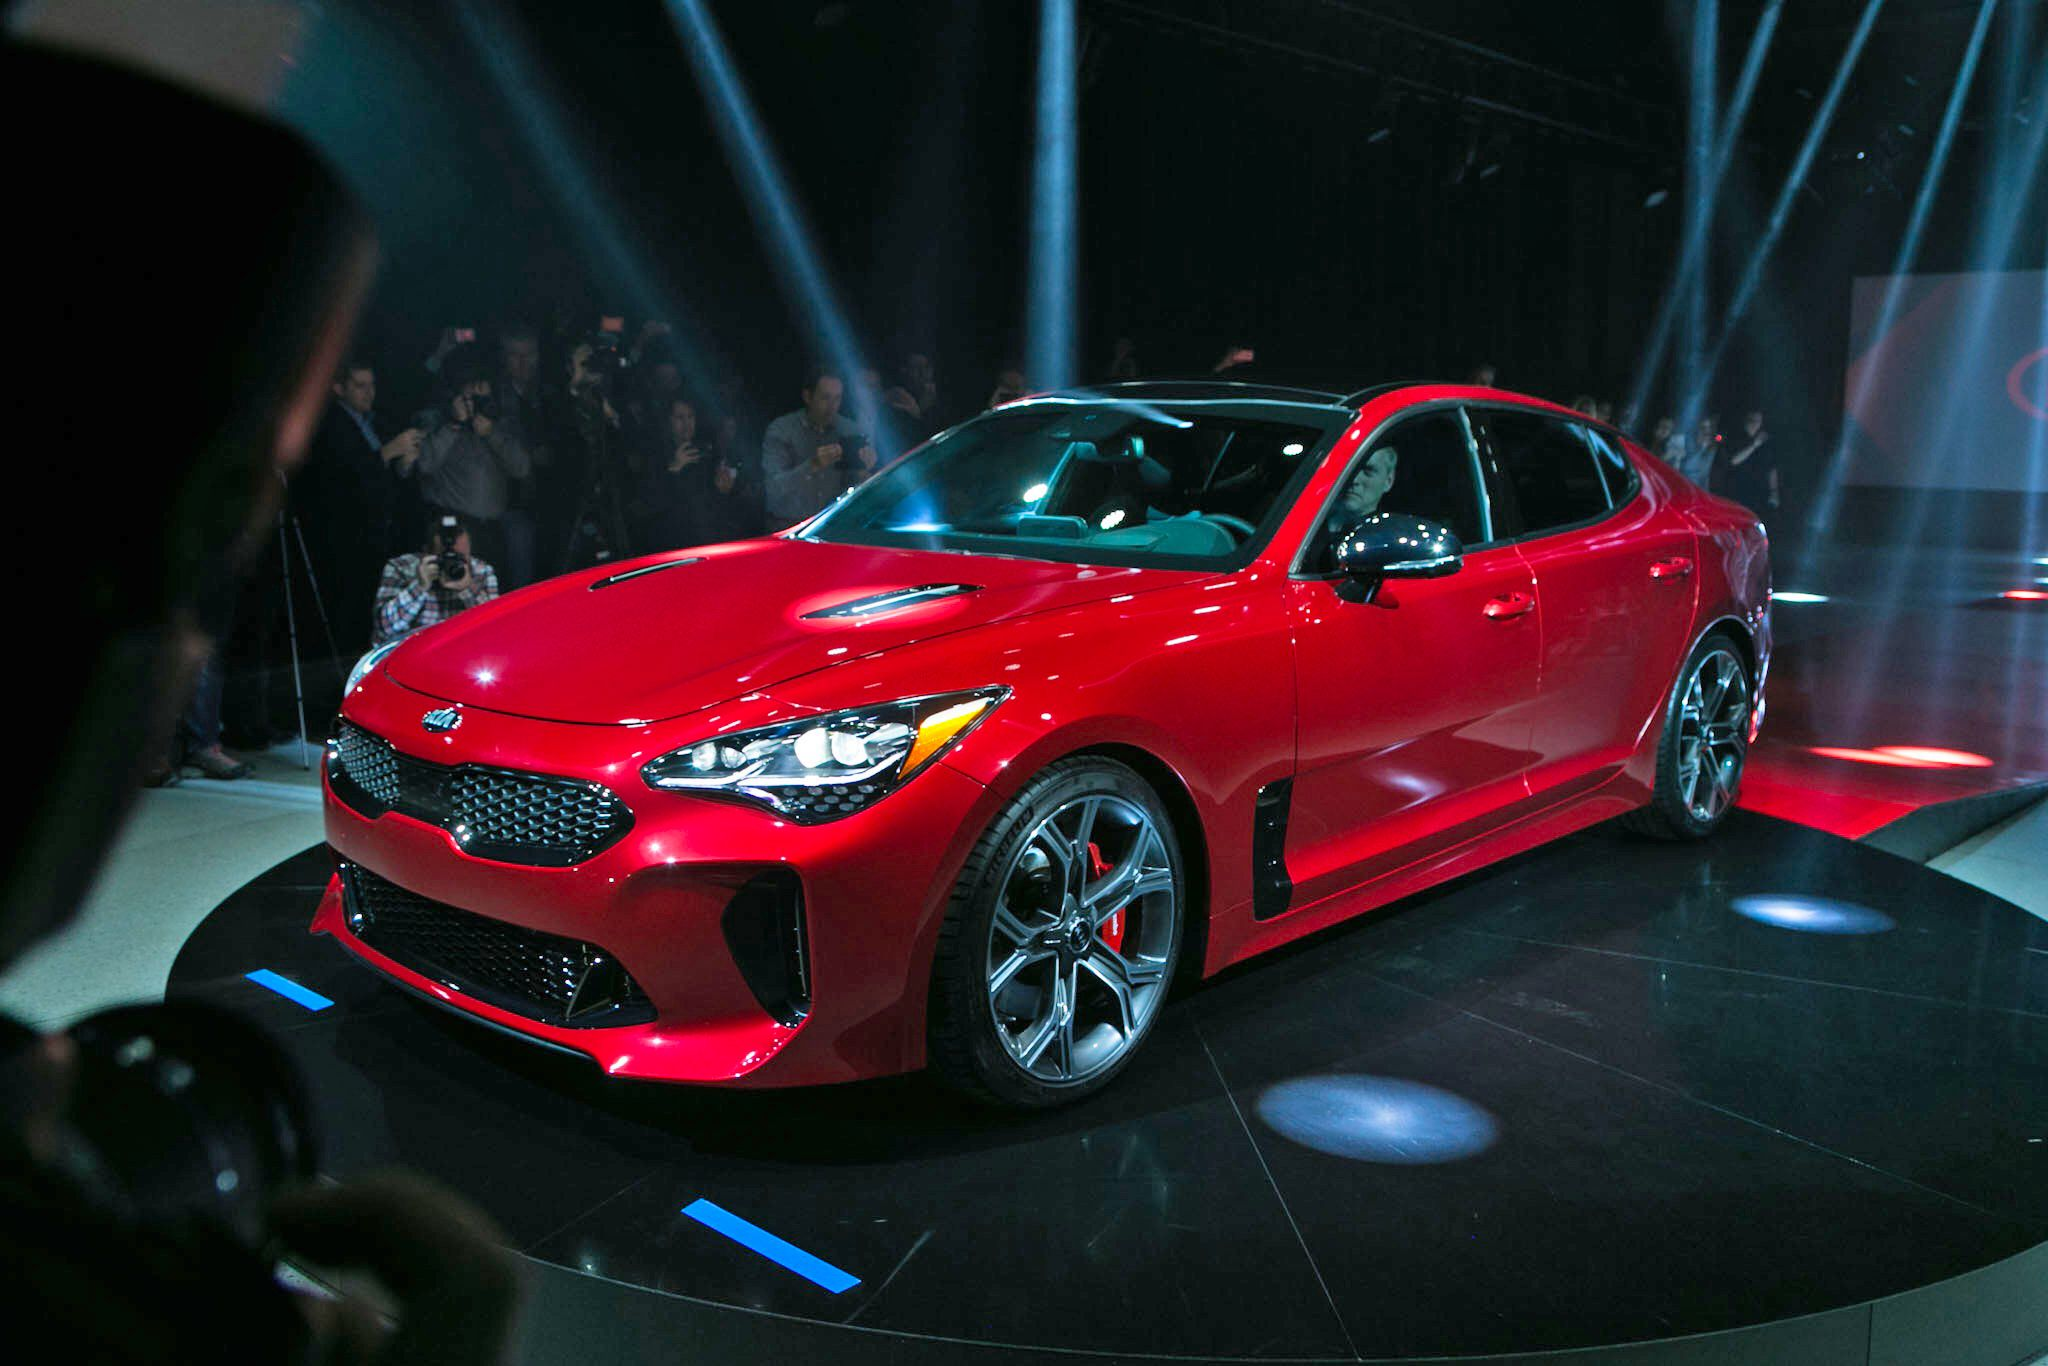 Kia Stinger Gt First Look Kia Stinger Kia Stinger